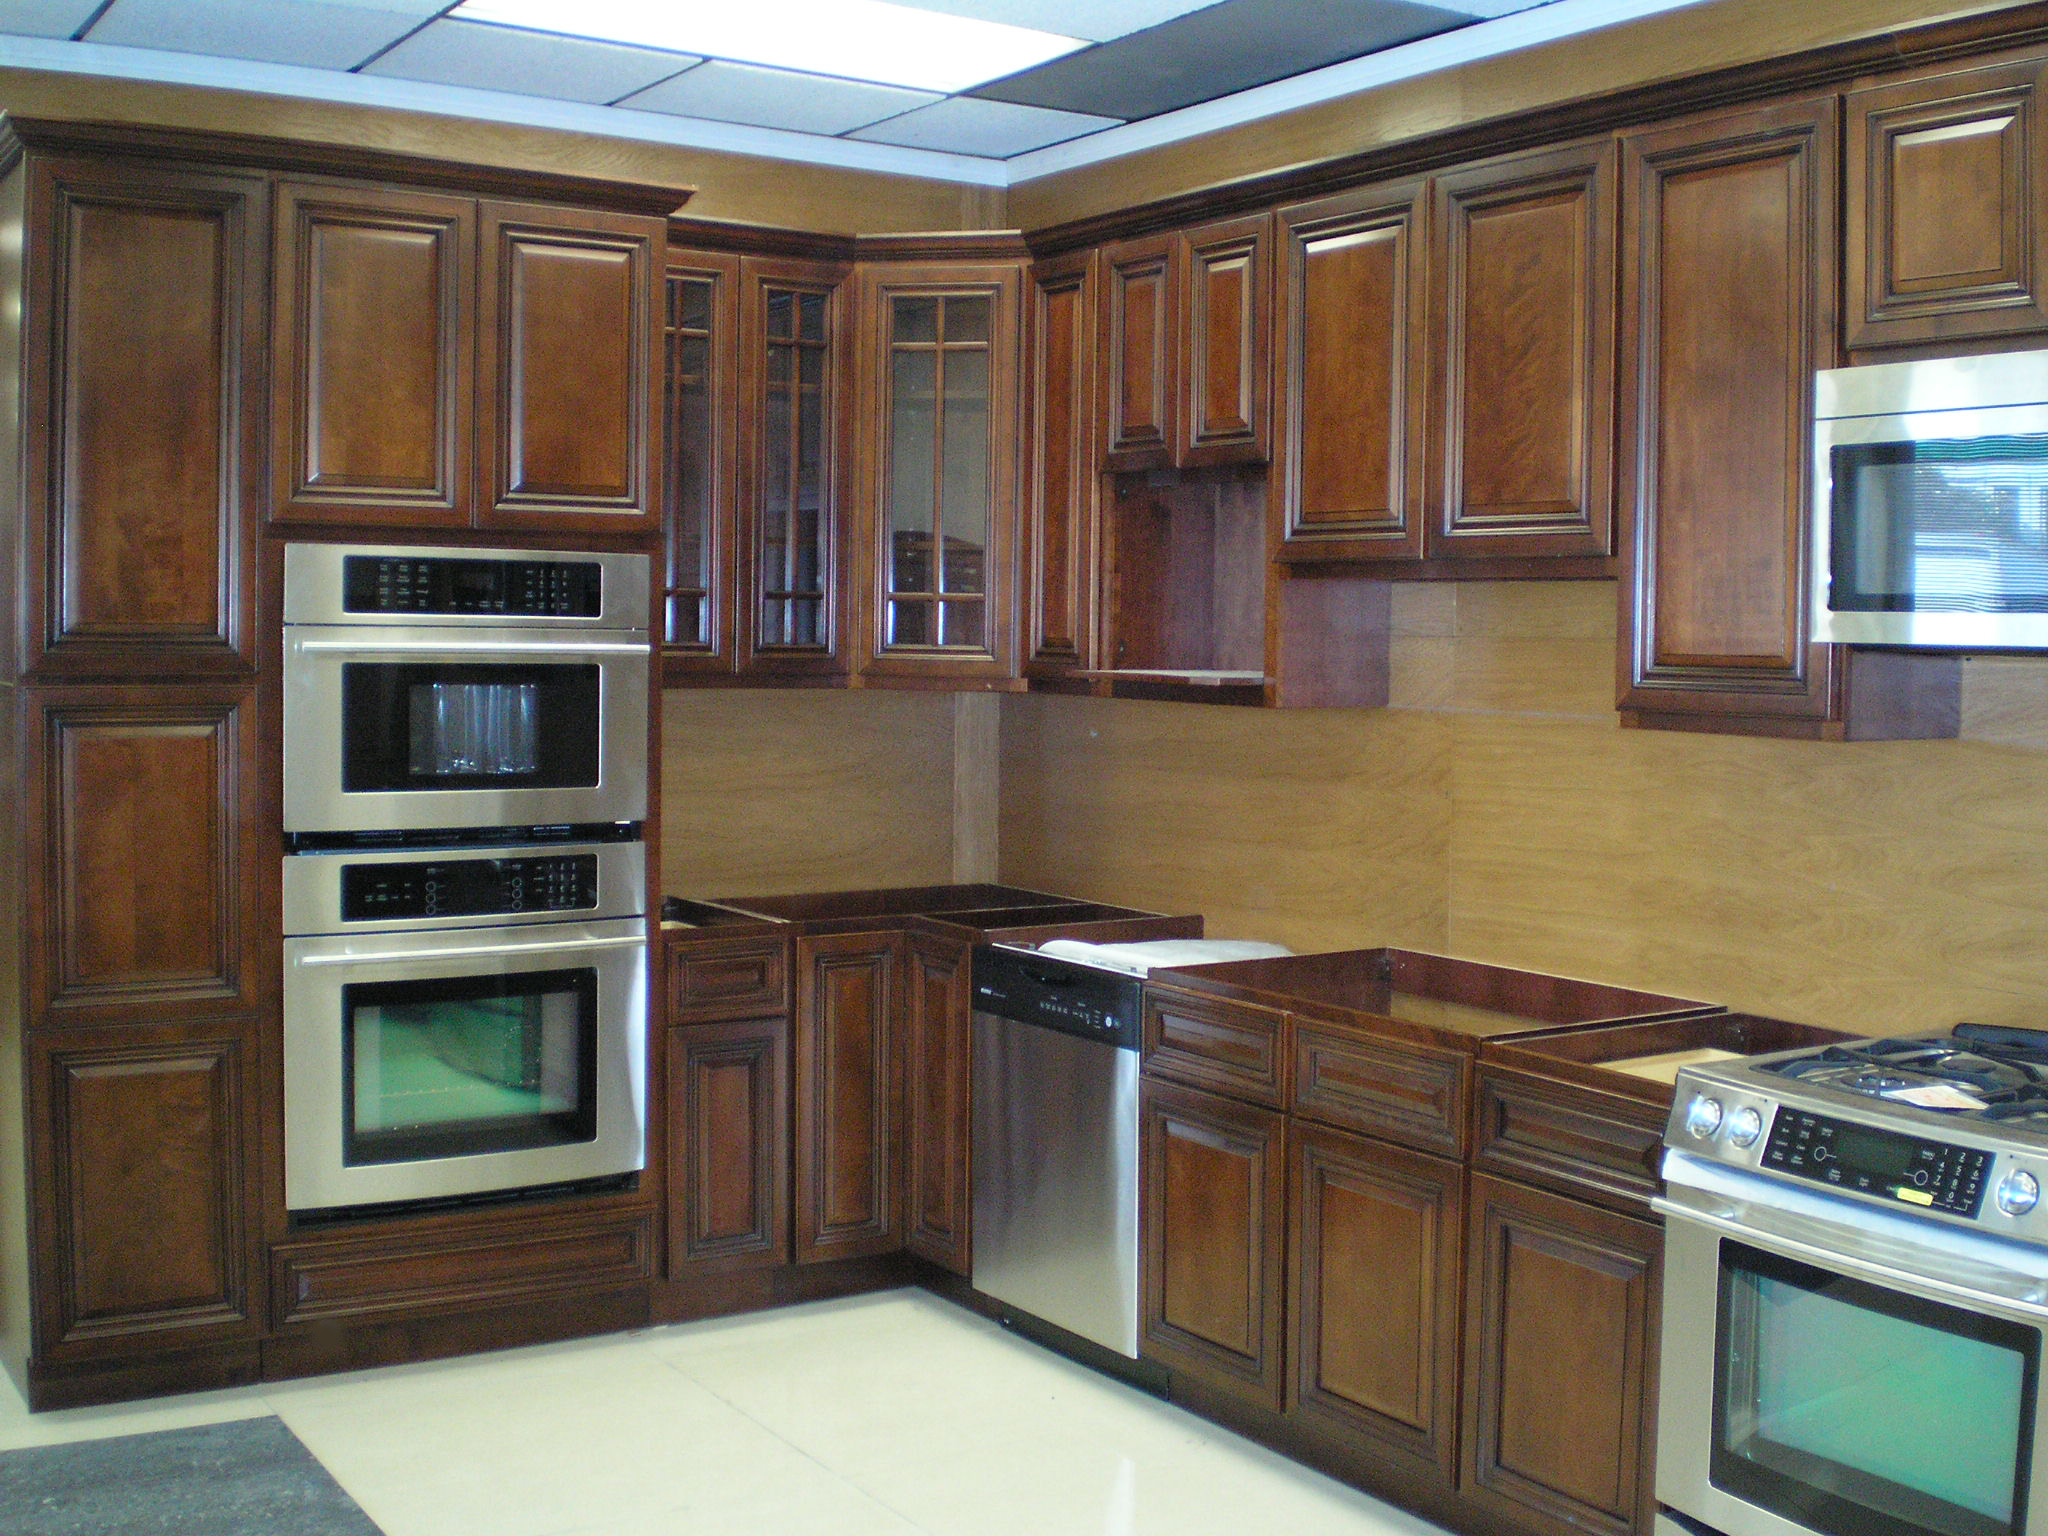 exotic walnut kitchen cabinets solid wood kitchen cabinetry. Black Bedroom Furniture Sets. Home Design Ideas